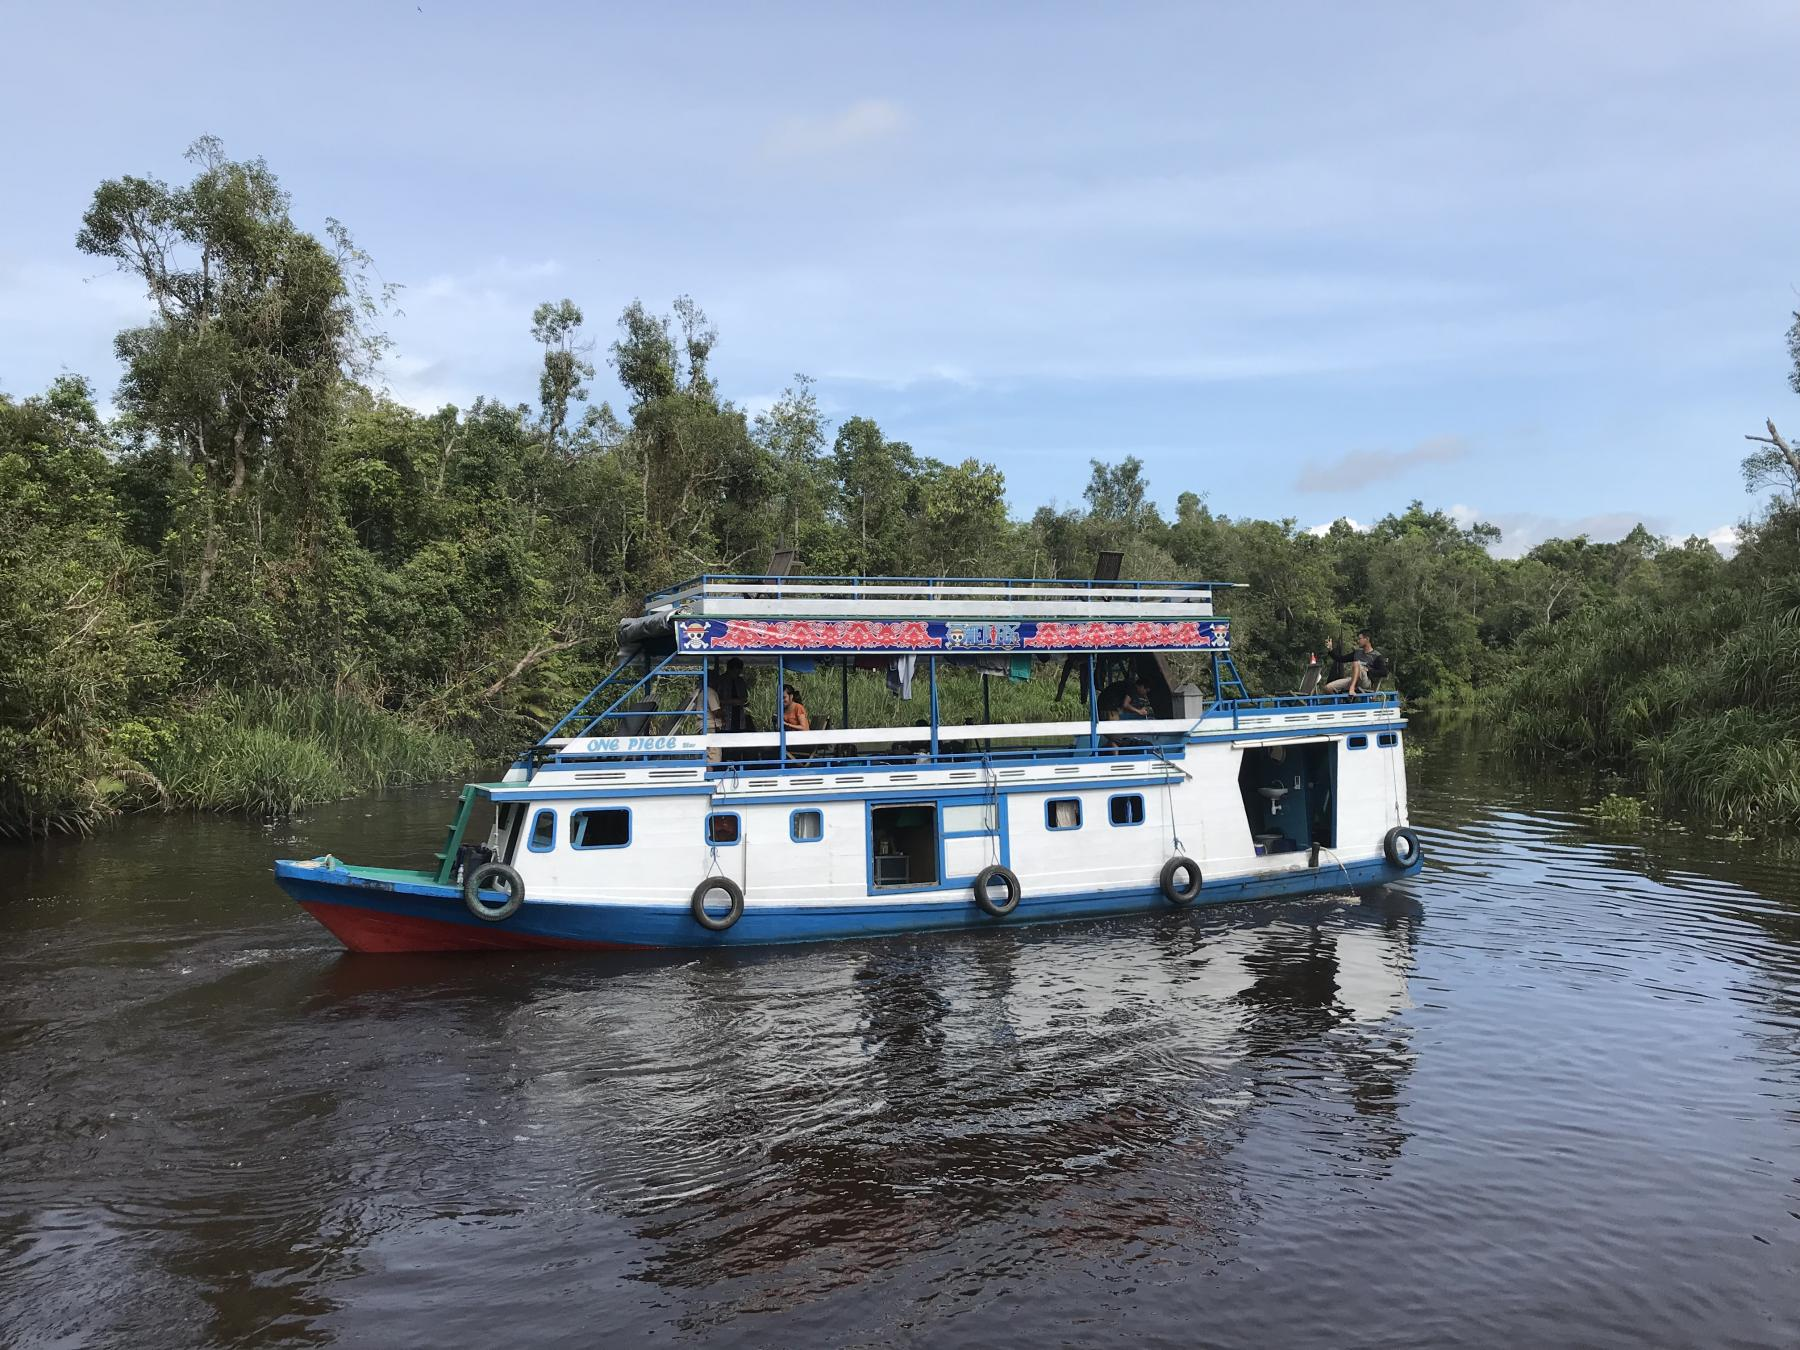 ORANGUTAN RIVER SAFARI - 3D3N Overnight on Kelotok Boat - Indonesia starting at Tanjung Puting National Park, Kumai Hulu, West Kotawaringin Regency, Central Kalimantan, Indonesia